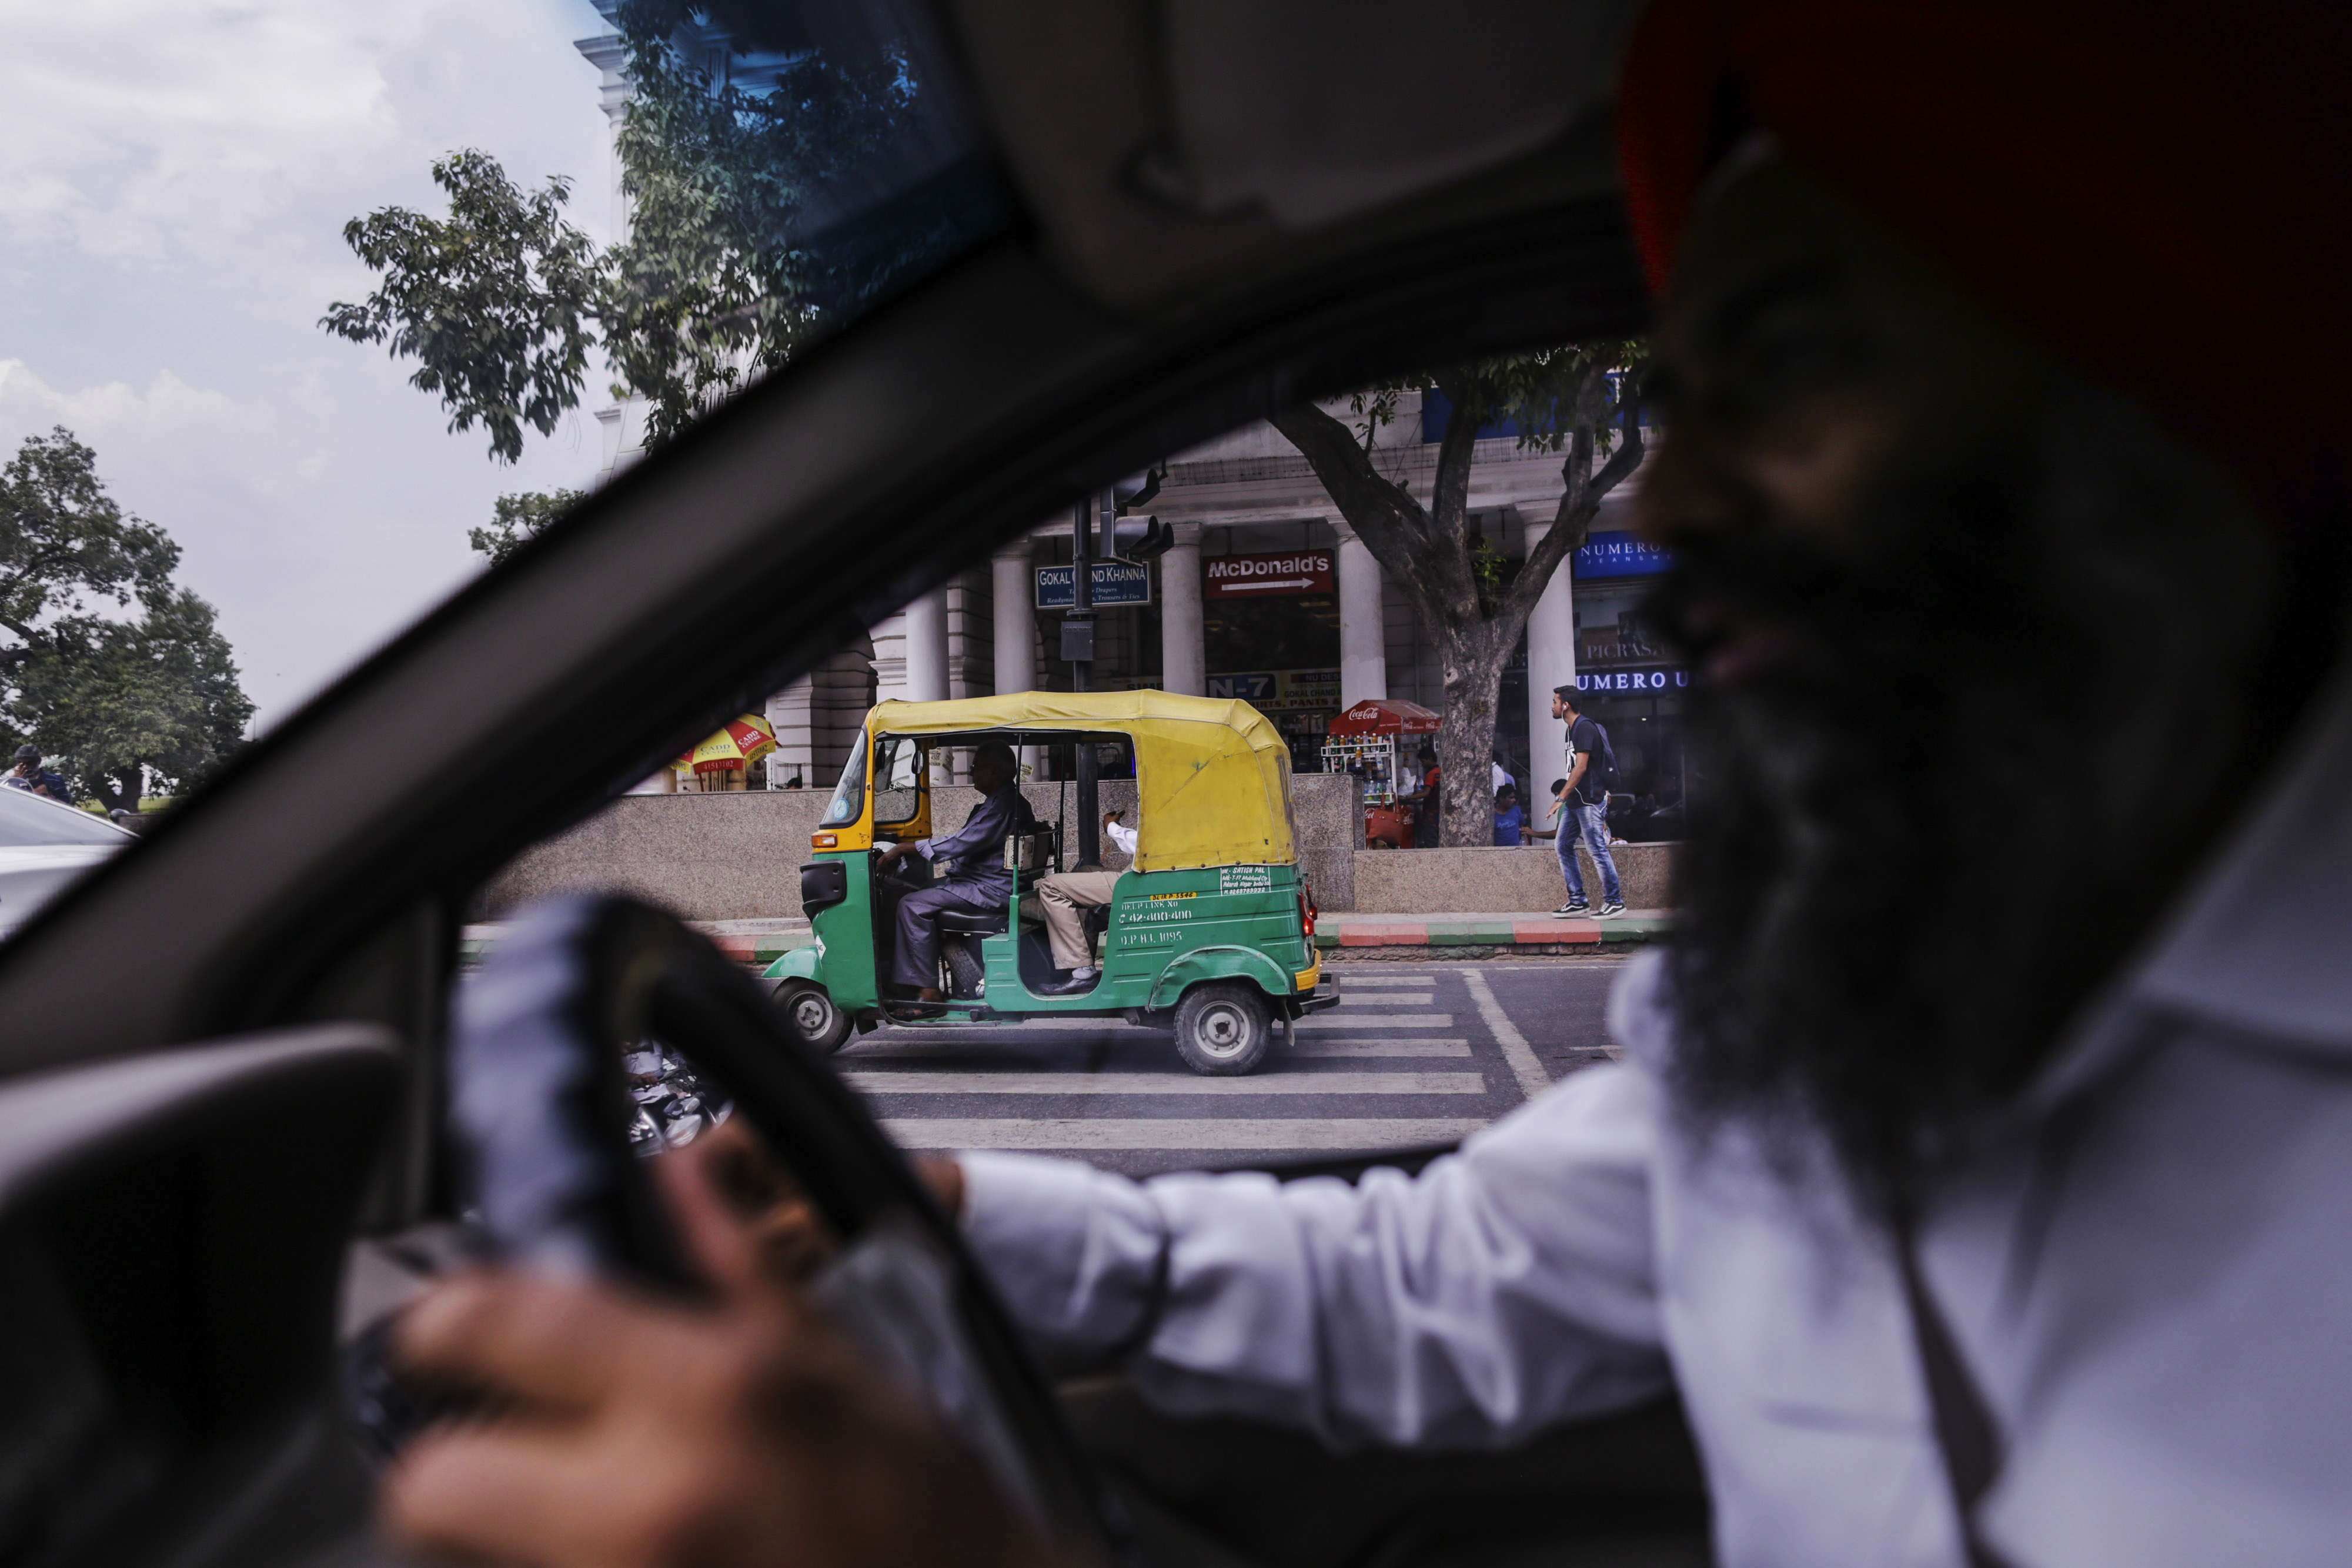 An auto rickshaw travels past Bhag Singh, a driver for the Uber Technologies Inc. ride-hailing service, as he drives a taxi in New Delhi, India, on Friday, Sept. 18, 2015.